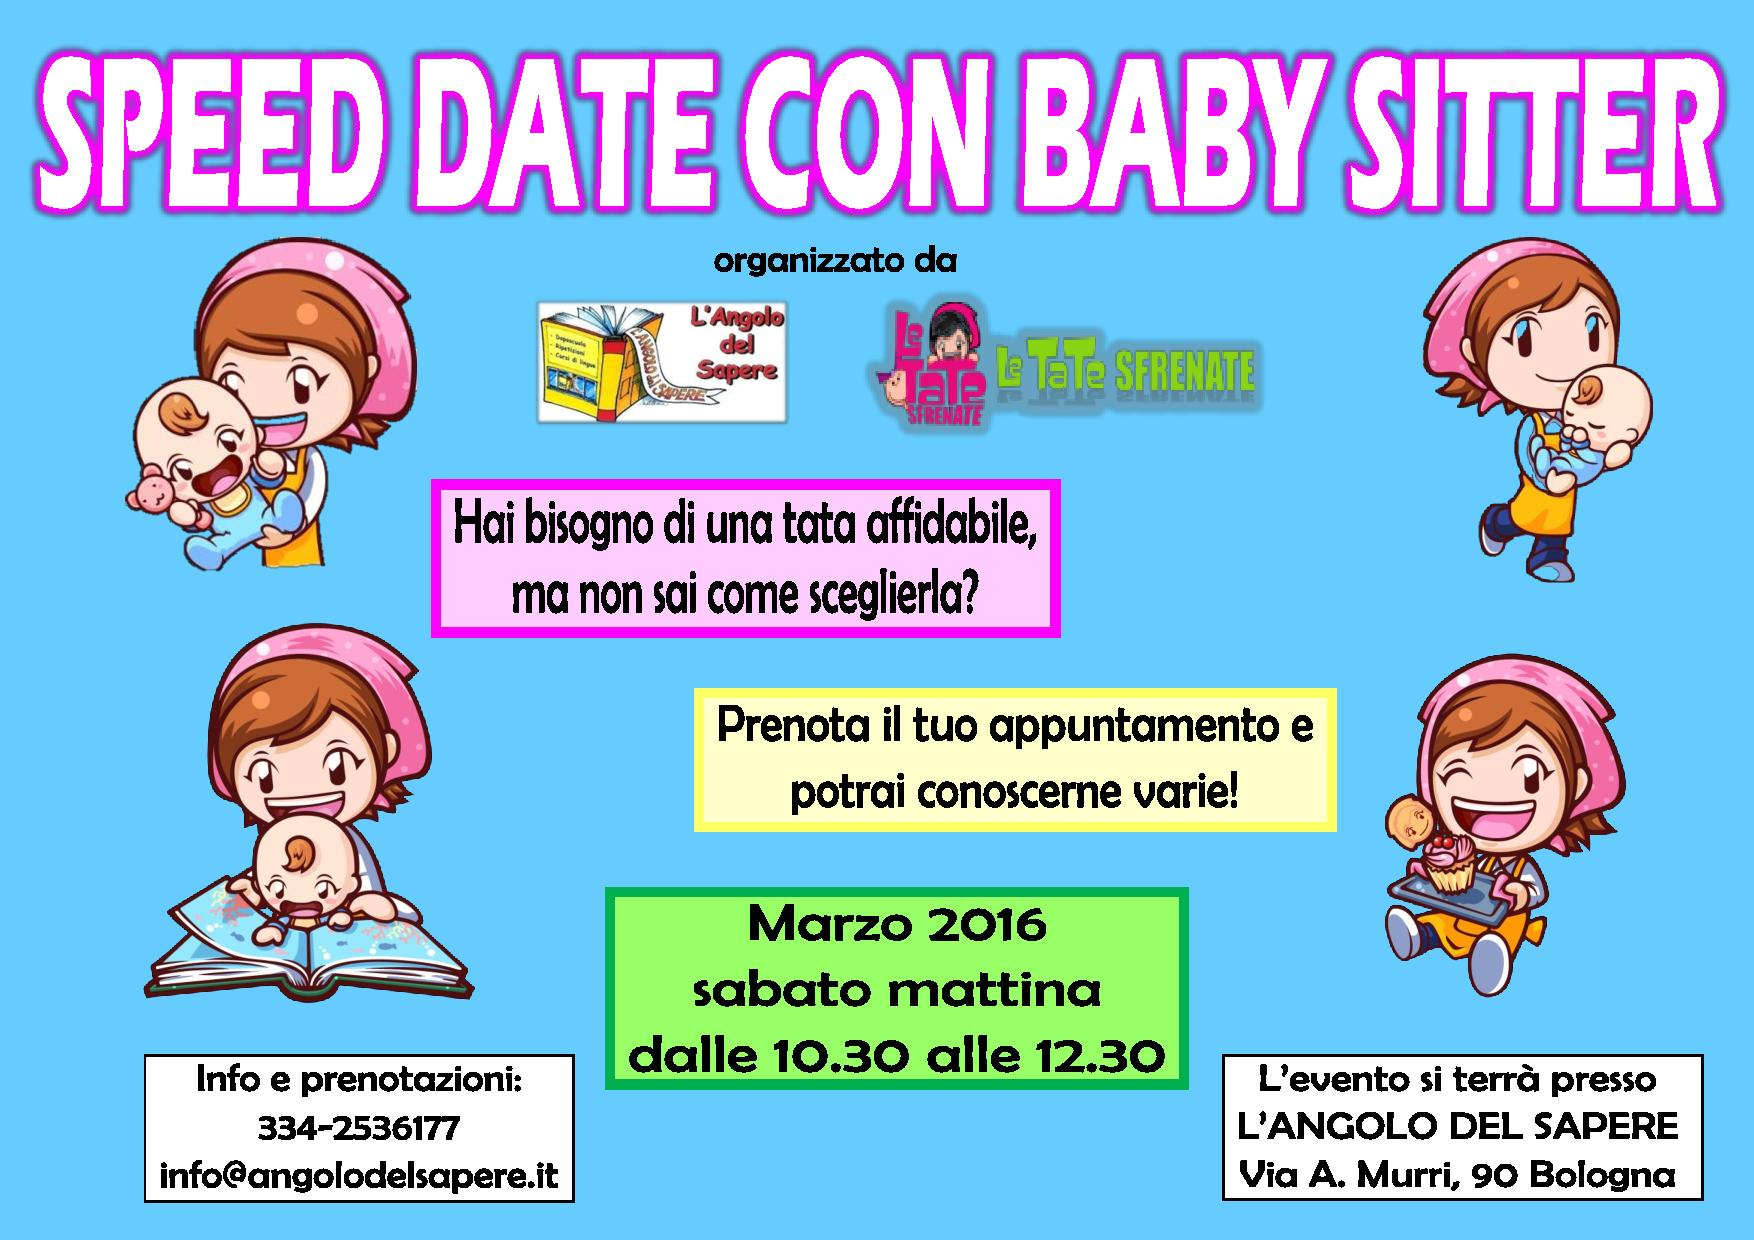 Etrade speed dating baby